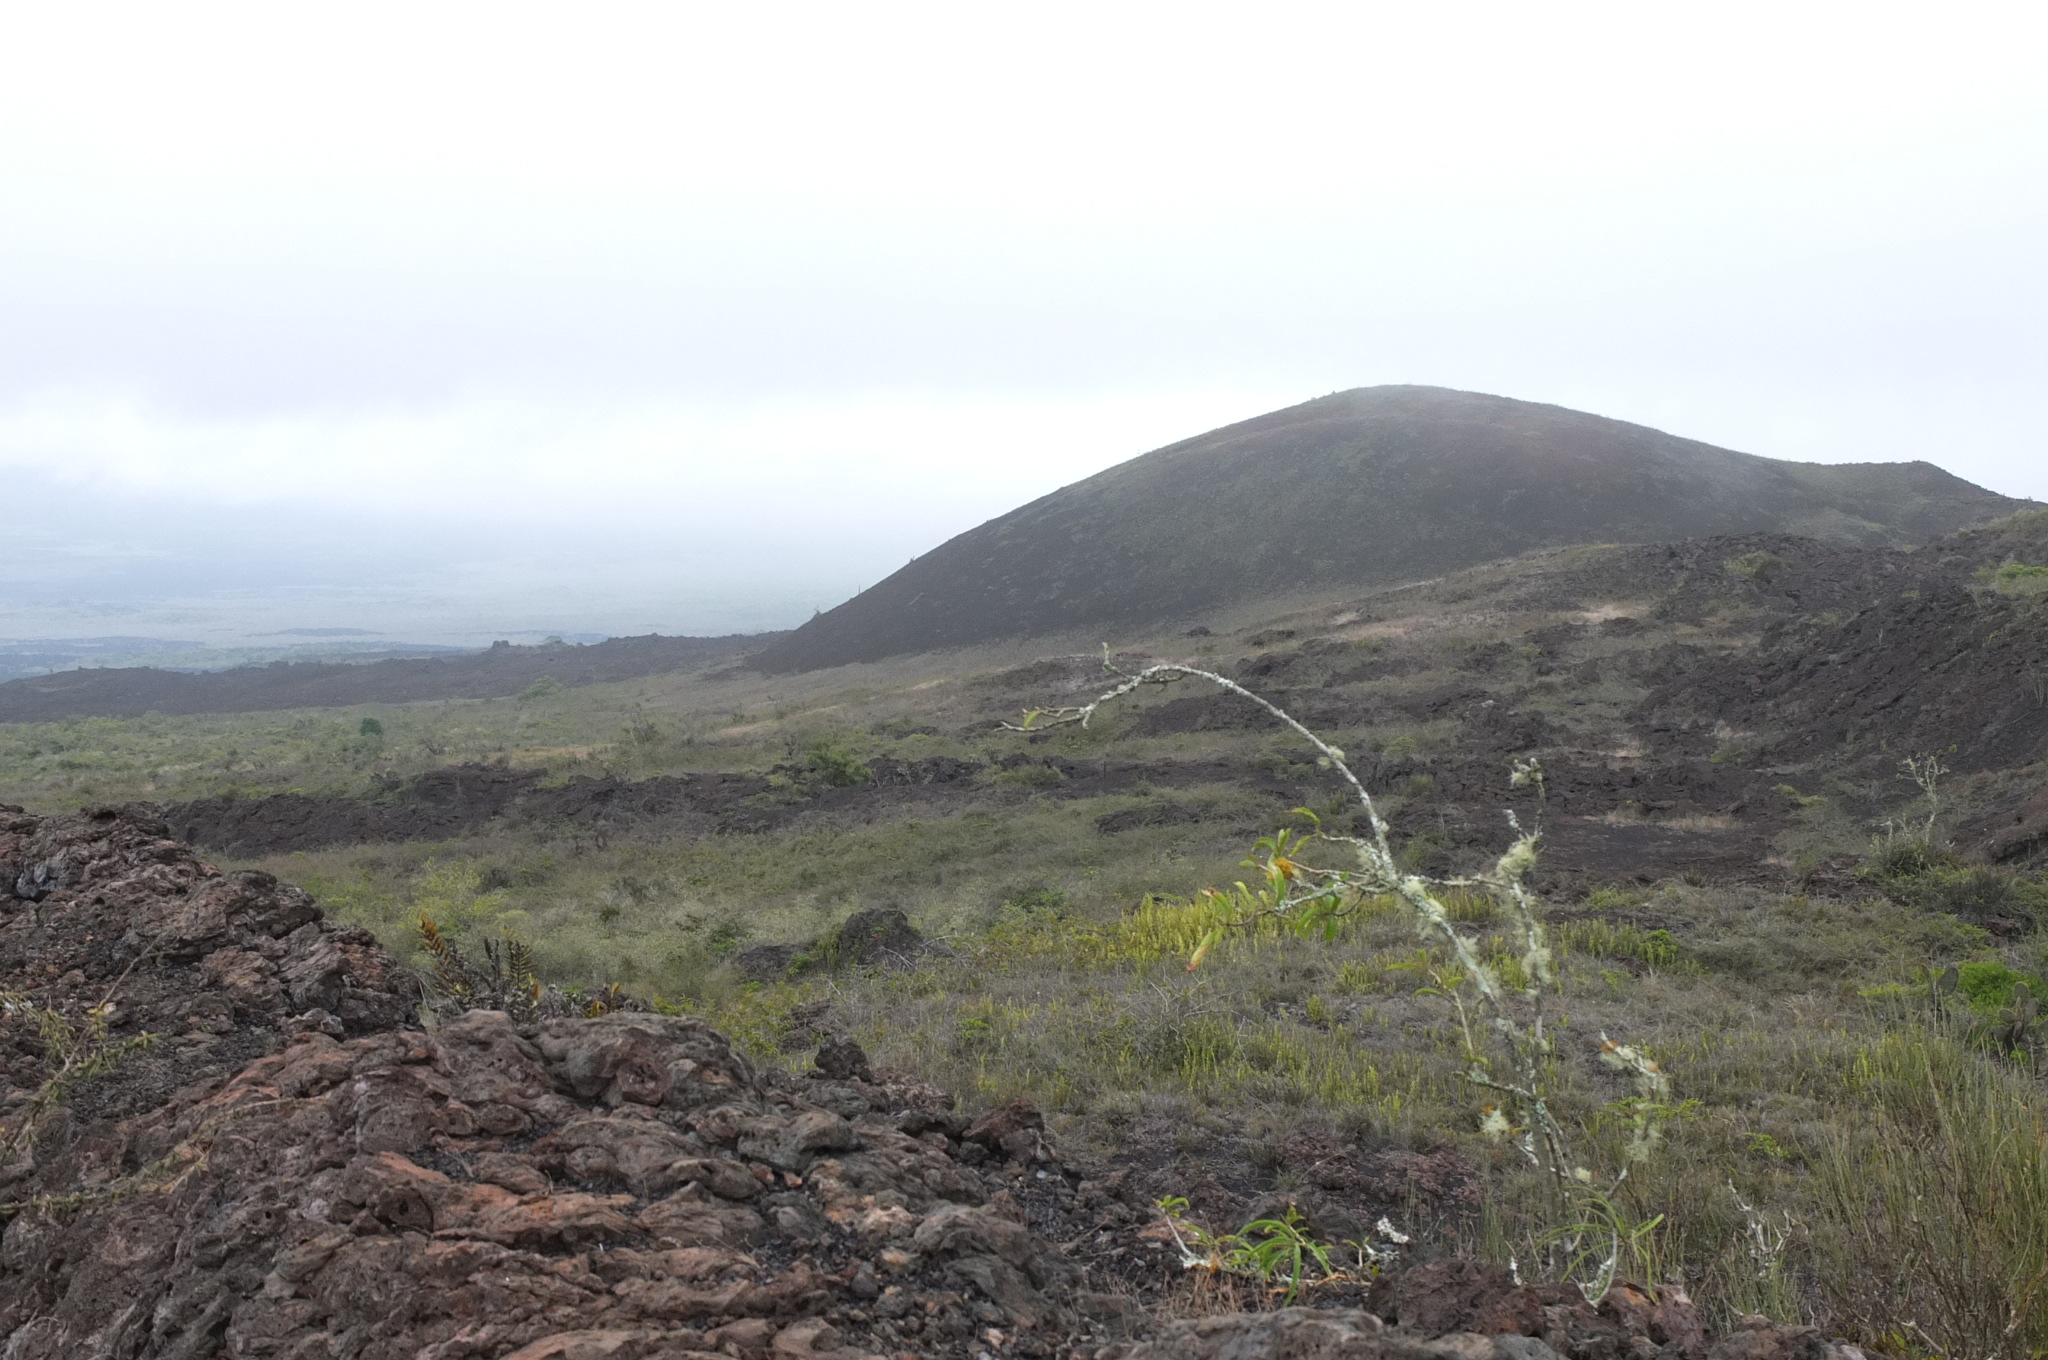 Trekking up to the active volcanic mountain on Isabela